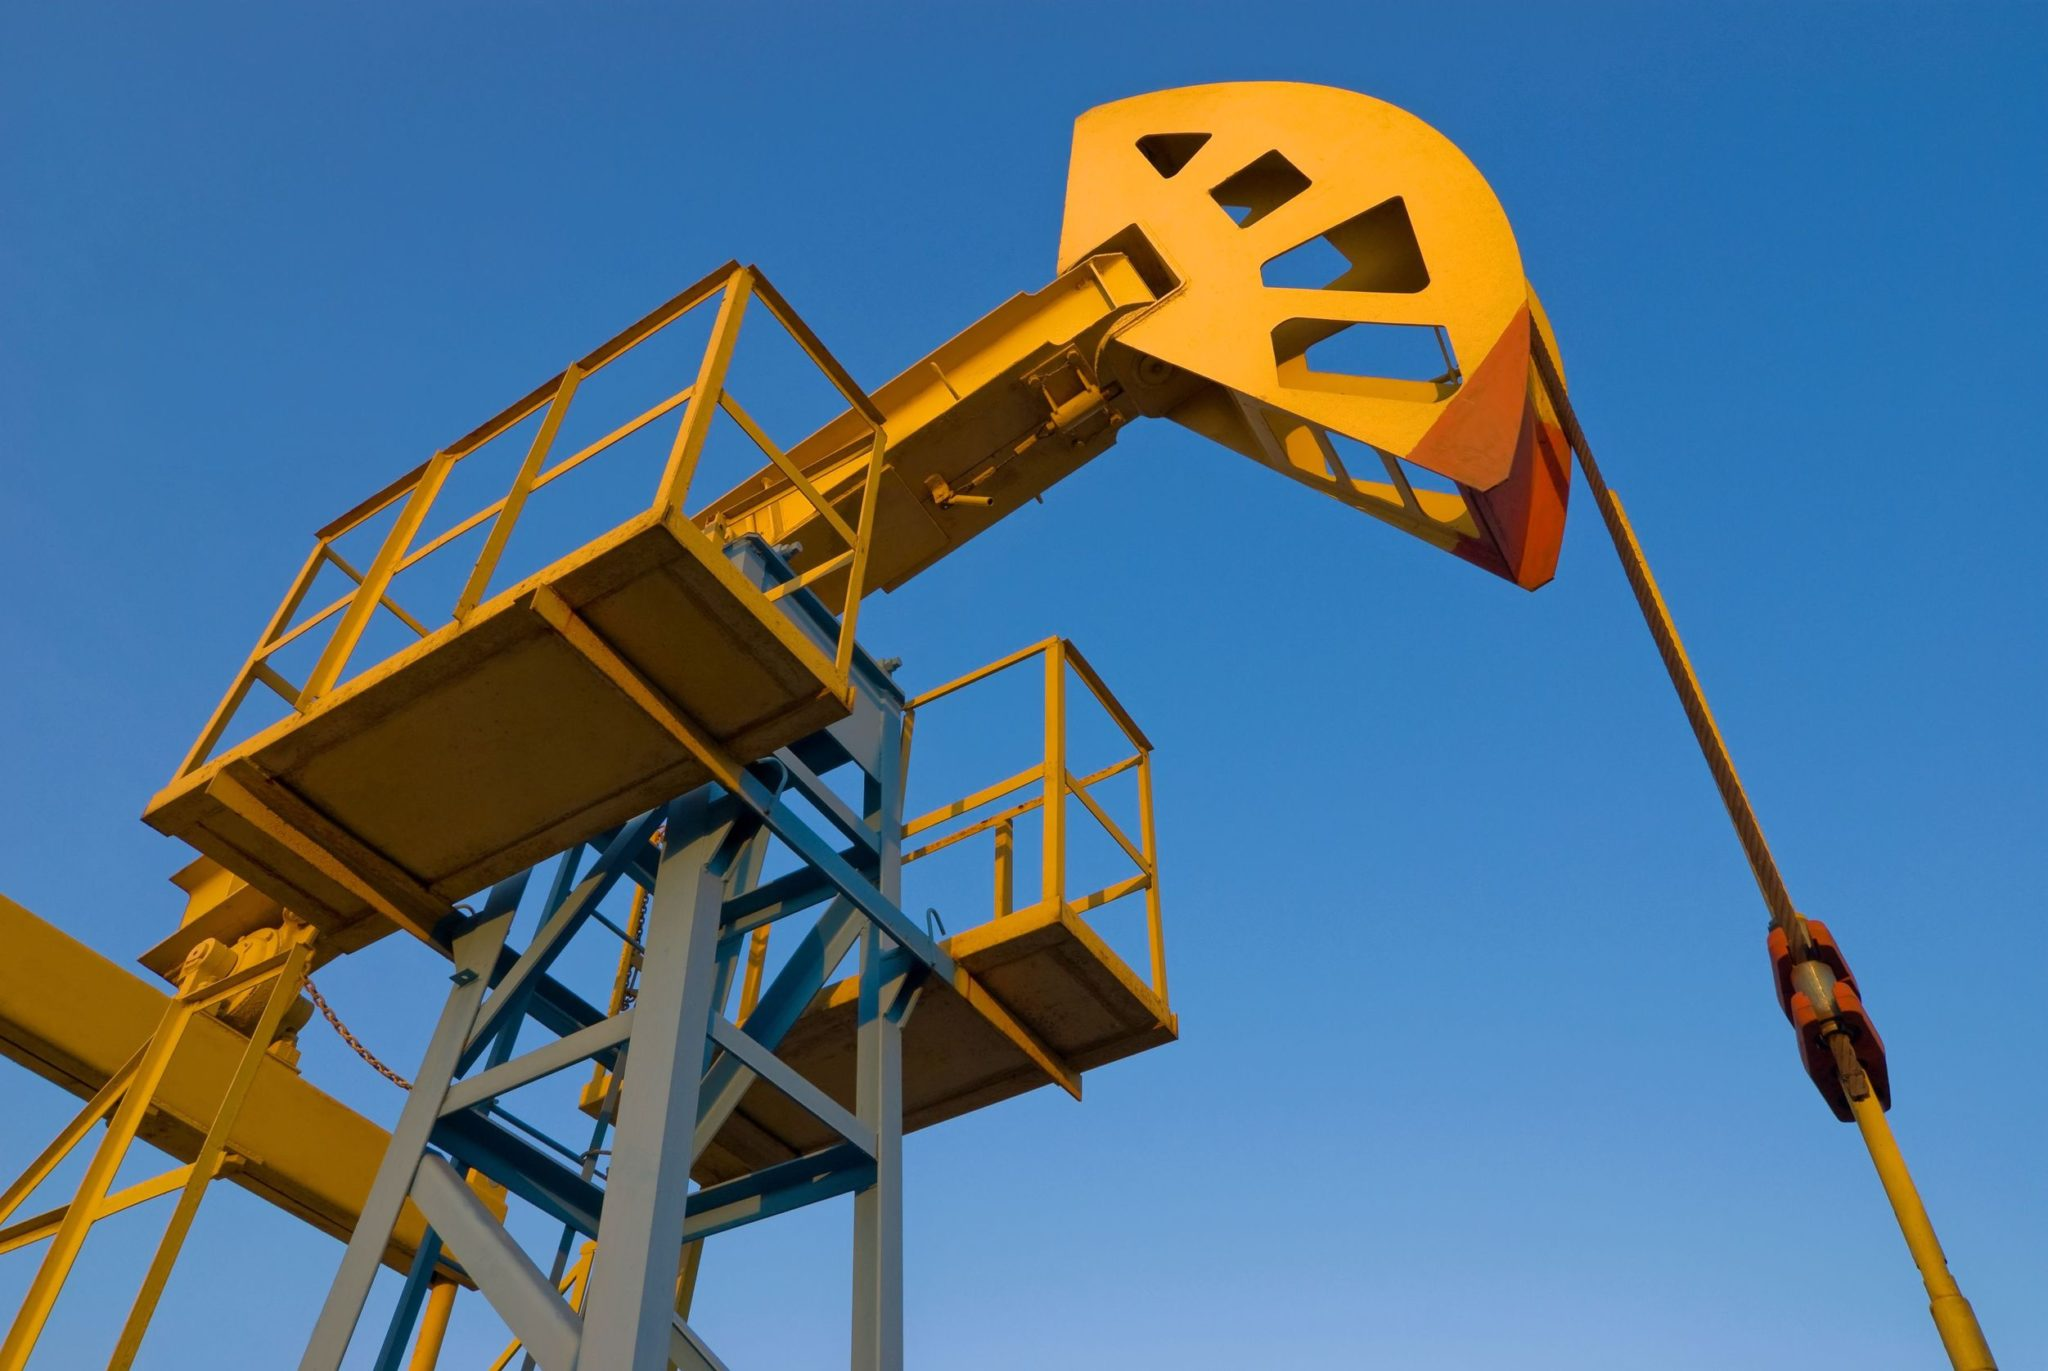 EIA Forecast and OPEC Meeting Move Oil Price